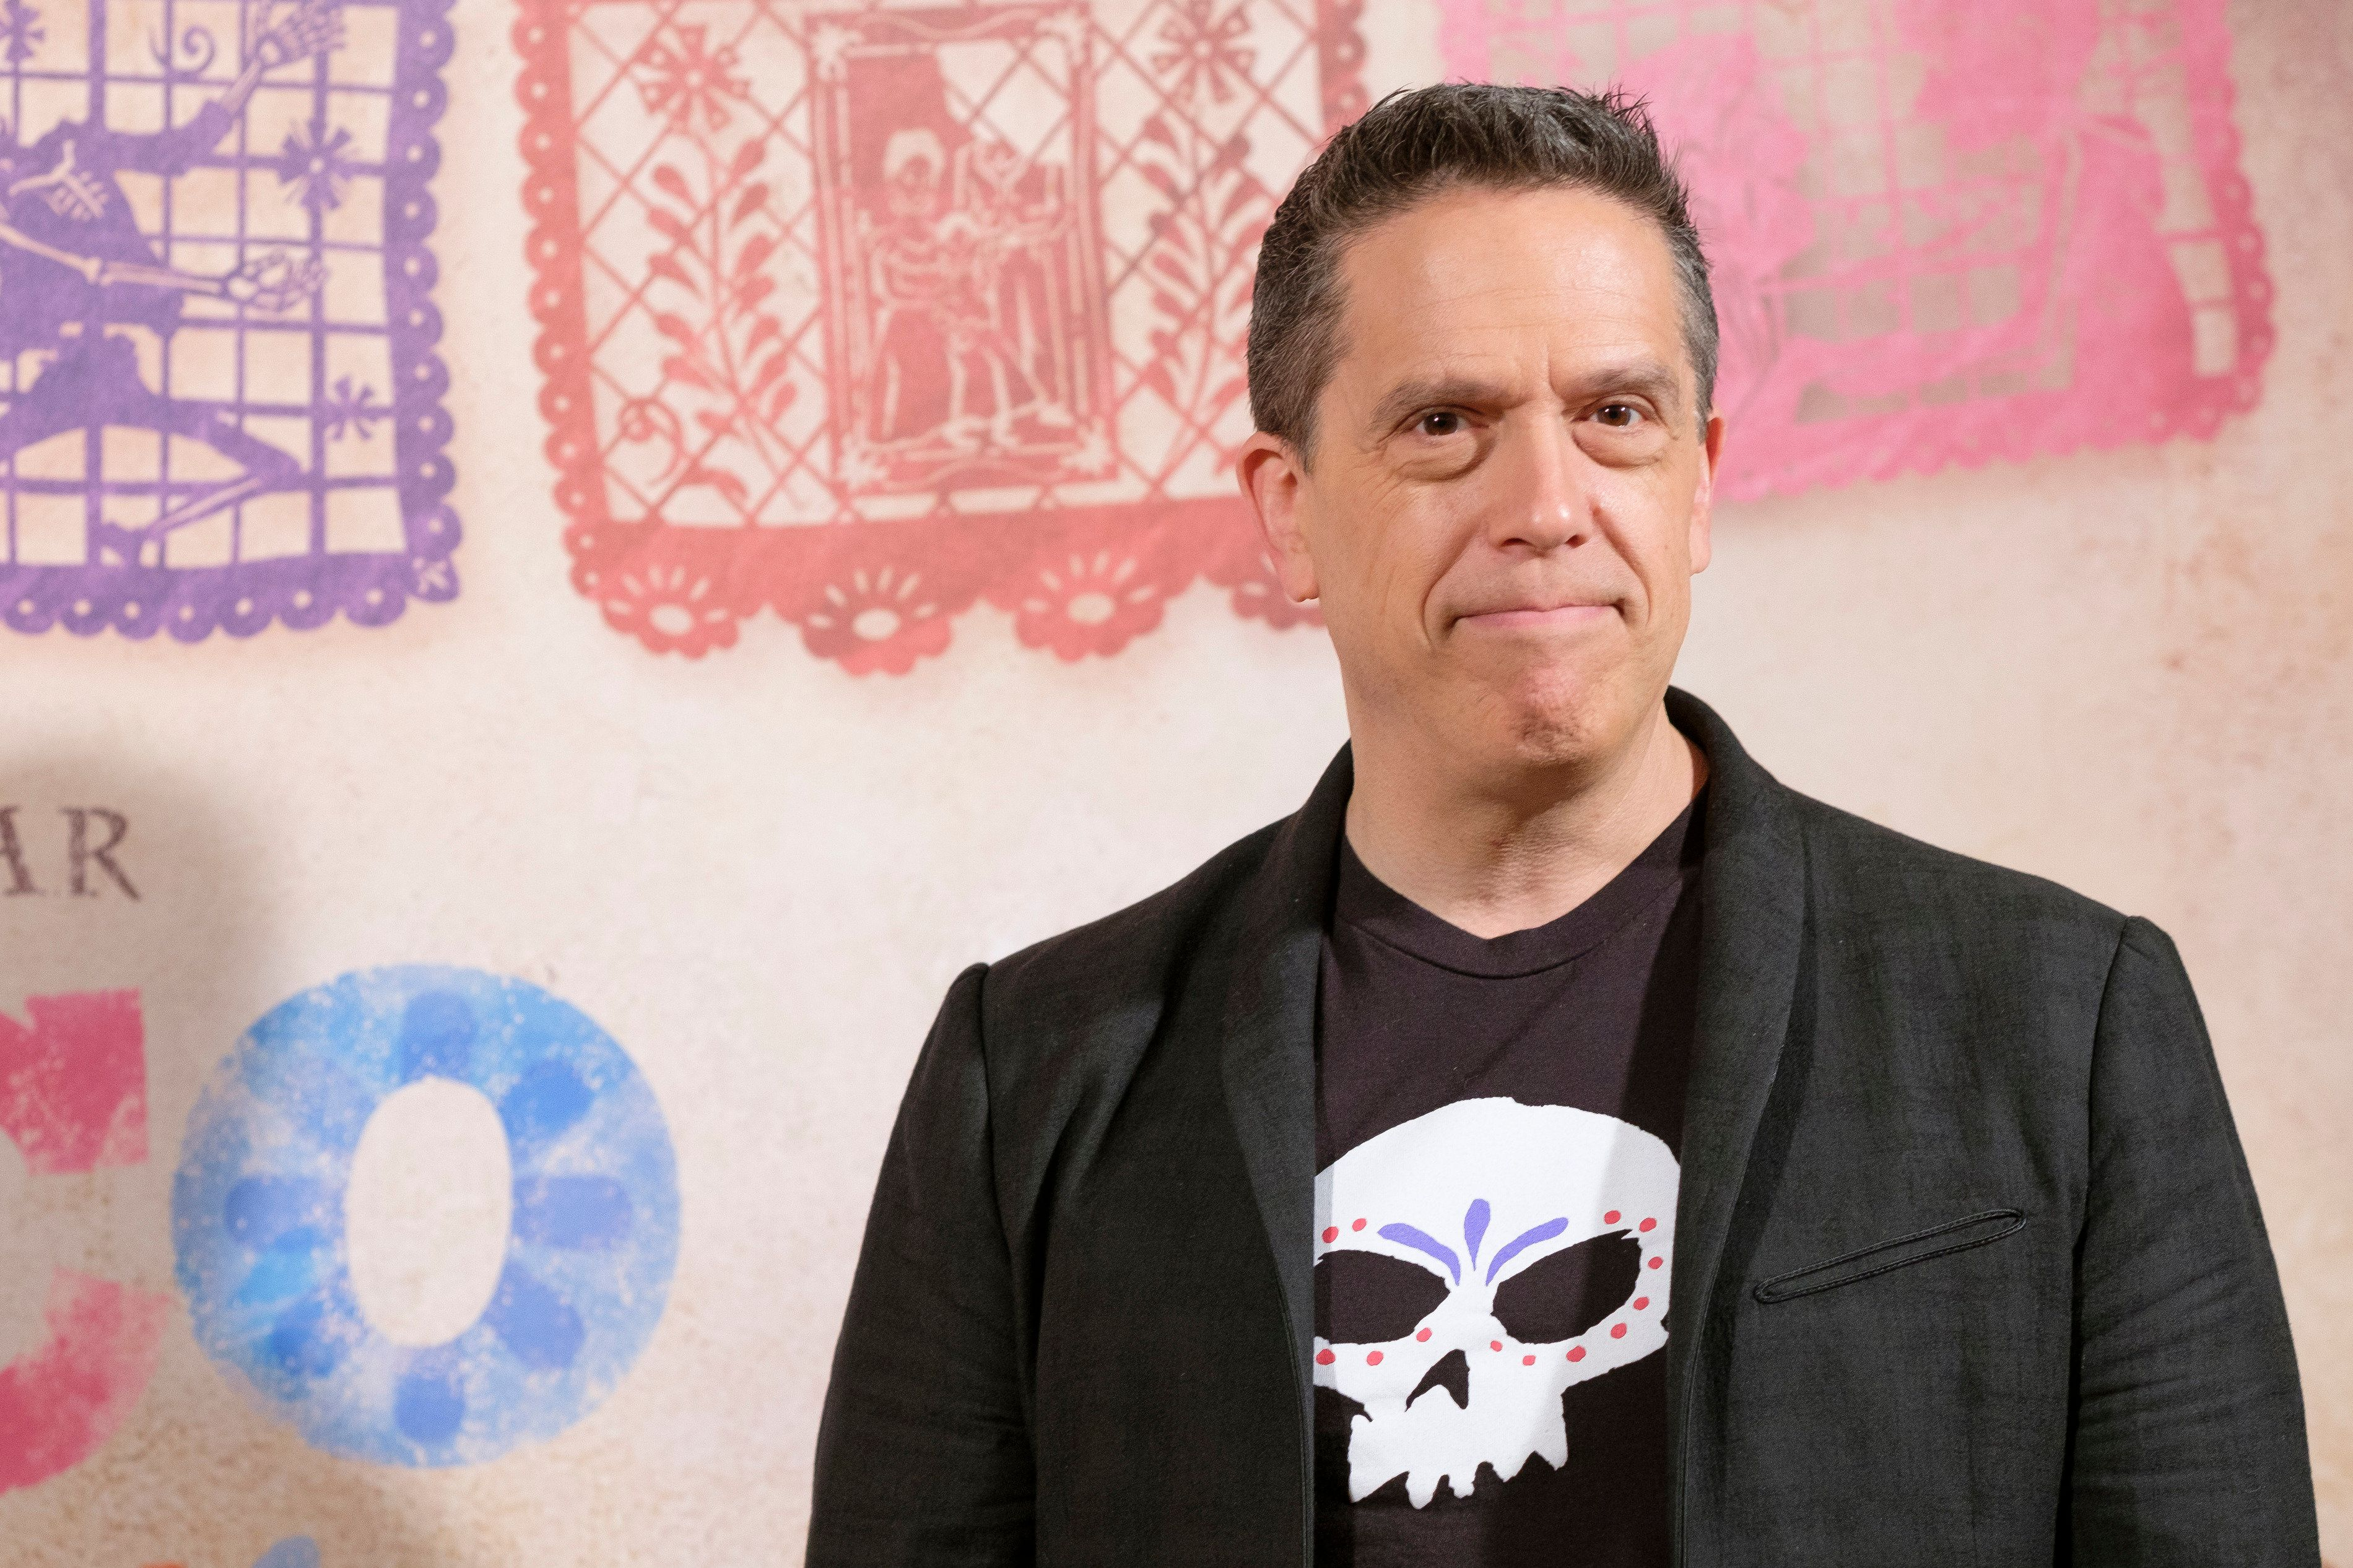 """Coco"" co-director Lee Unkrich announced his father's death on Sunday."